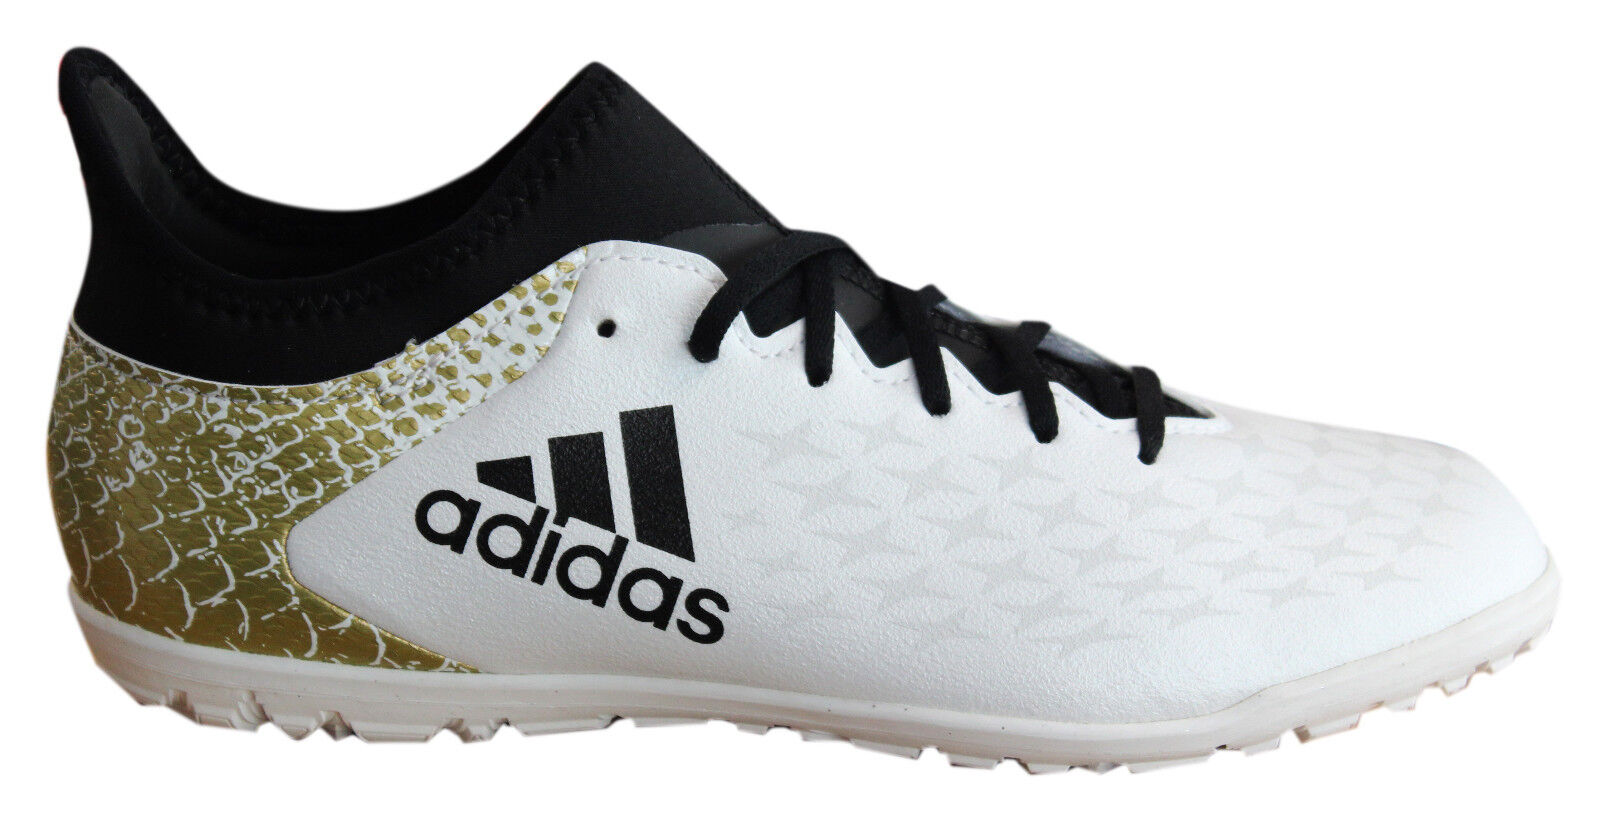 d70225ce5 ... promo code details about adidas x 16.3 tf astro lace up white black gold  kids football